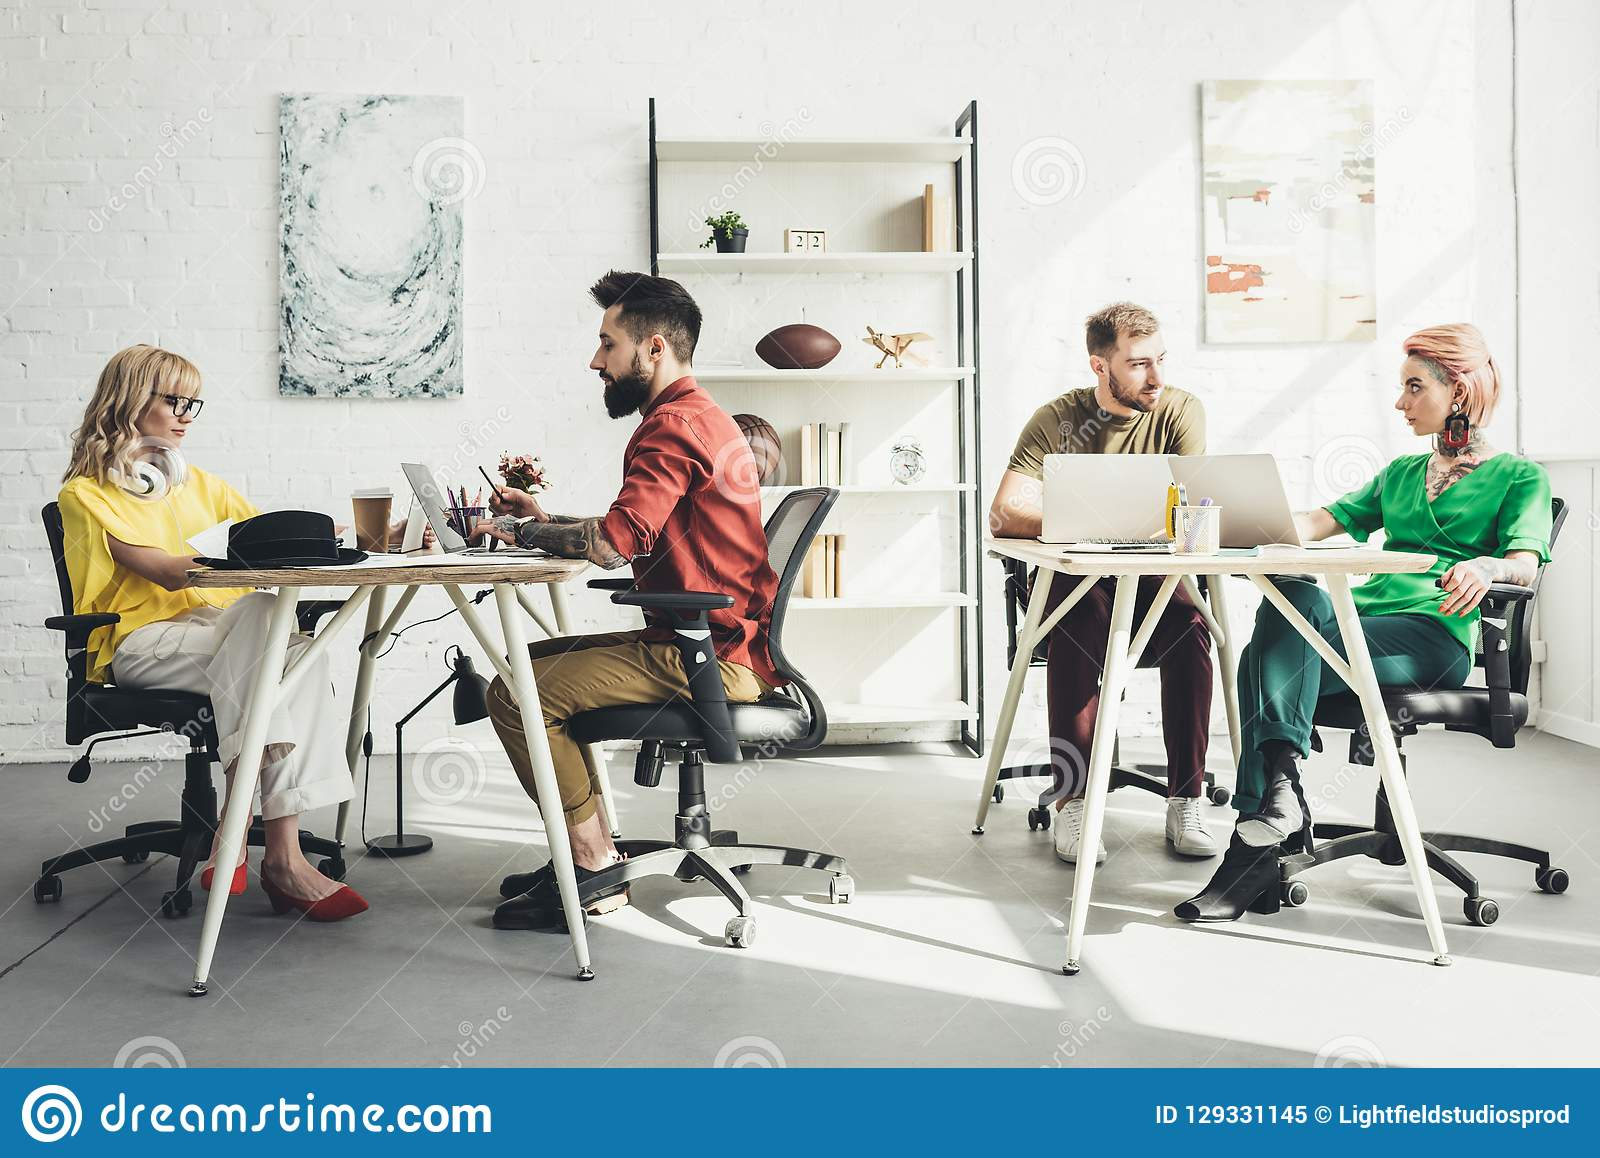 Group of young creative workers working on project in office royalty free stock photo